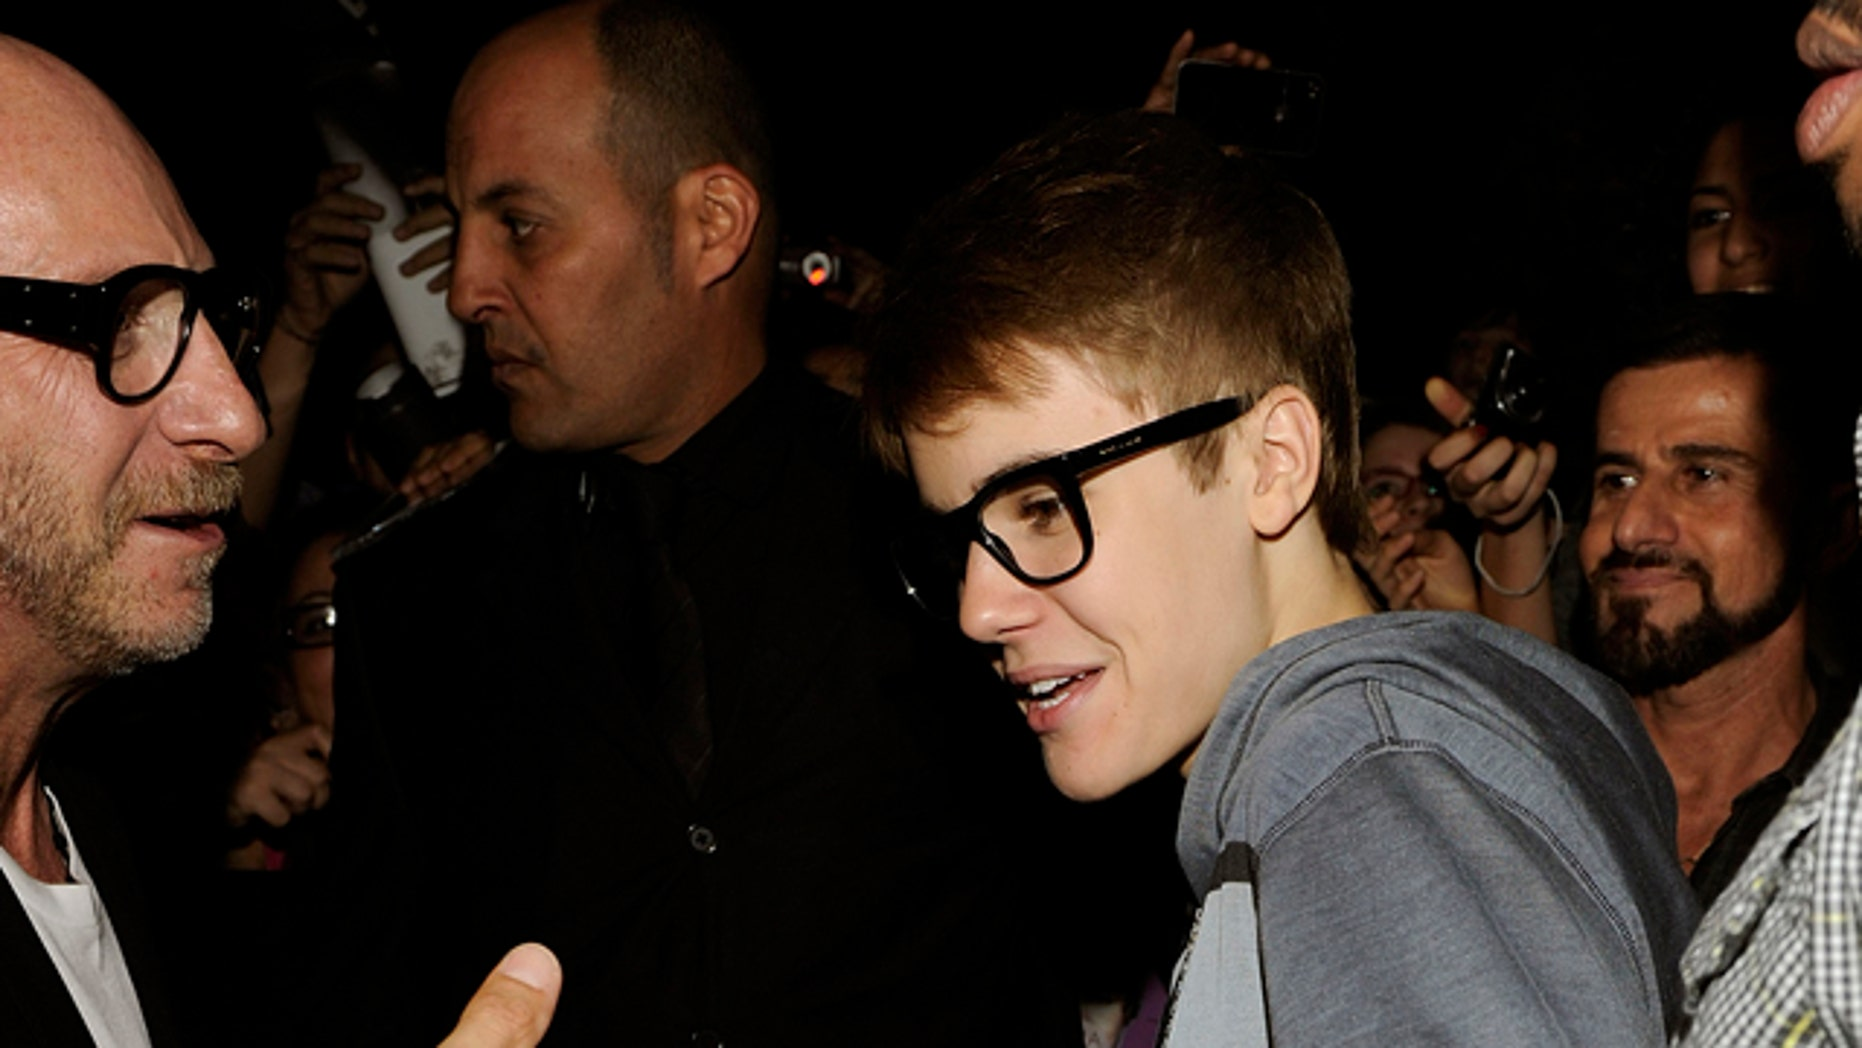 April 9, 2011: Canadian Pop singer Justin Bieber is welcomed by Domenico Dolce, left, as arrives at the Gold Restaurant after his concert in Milan , Italy